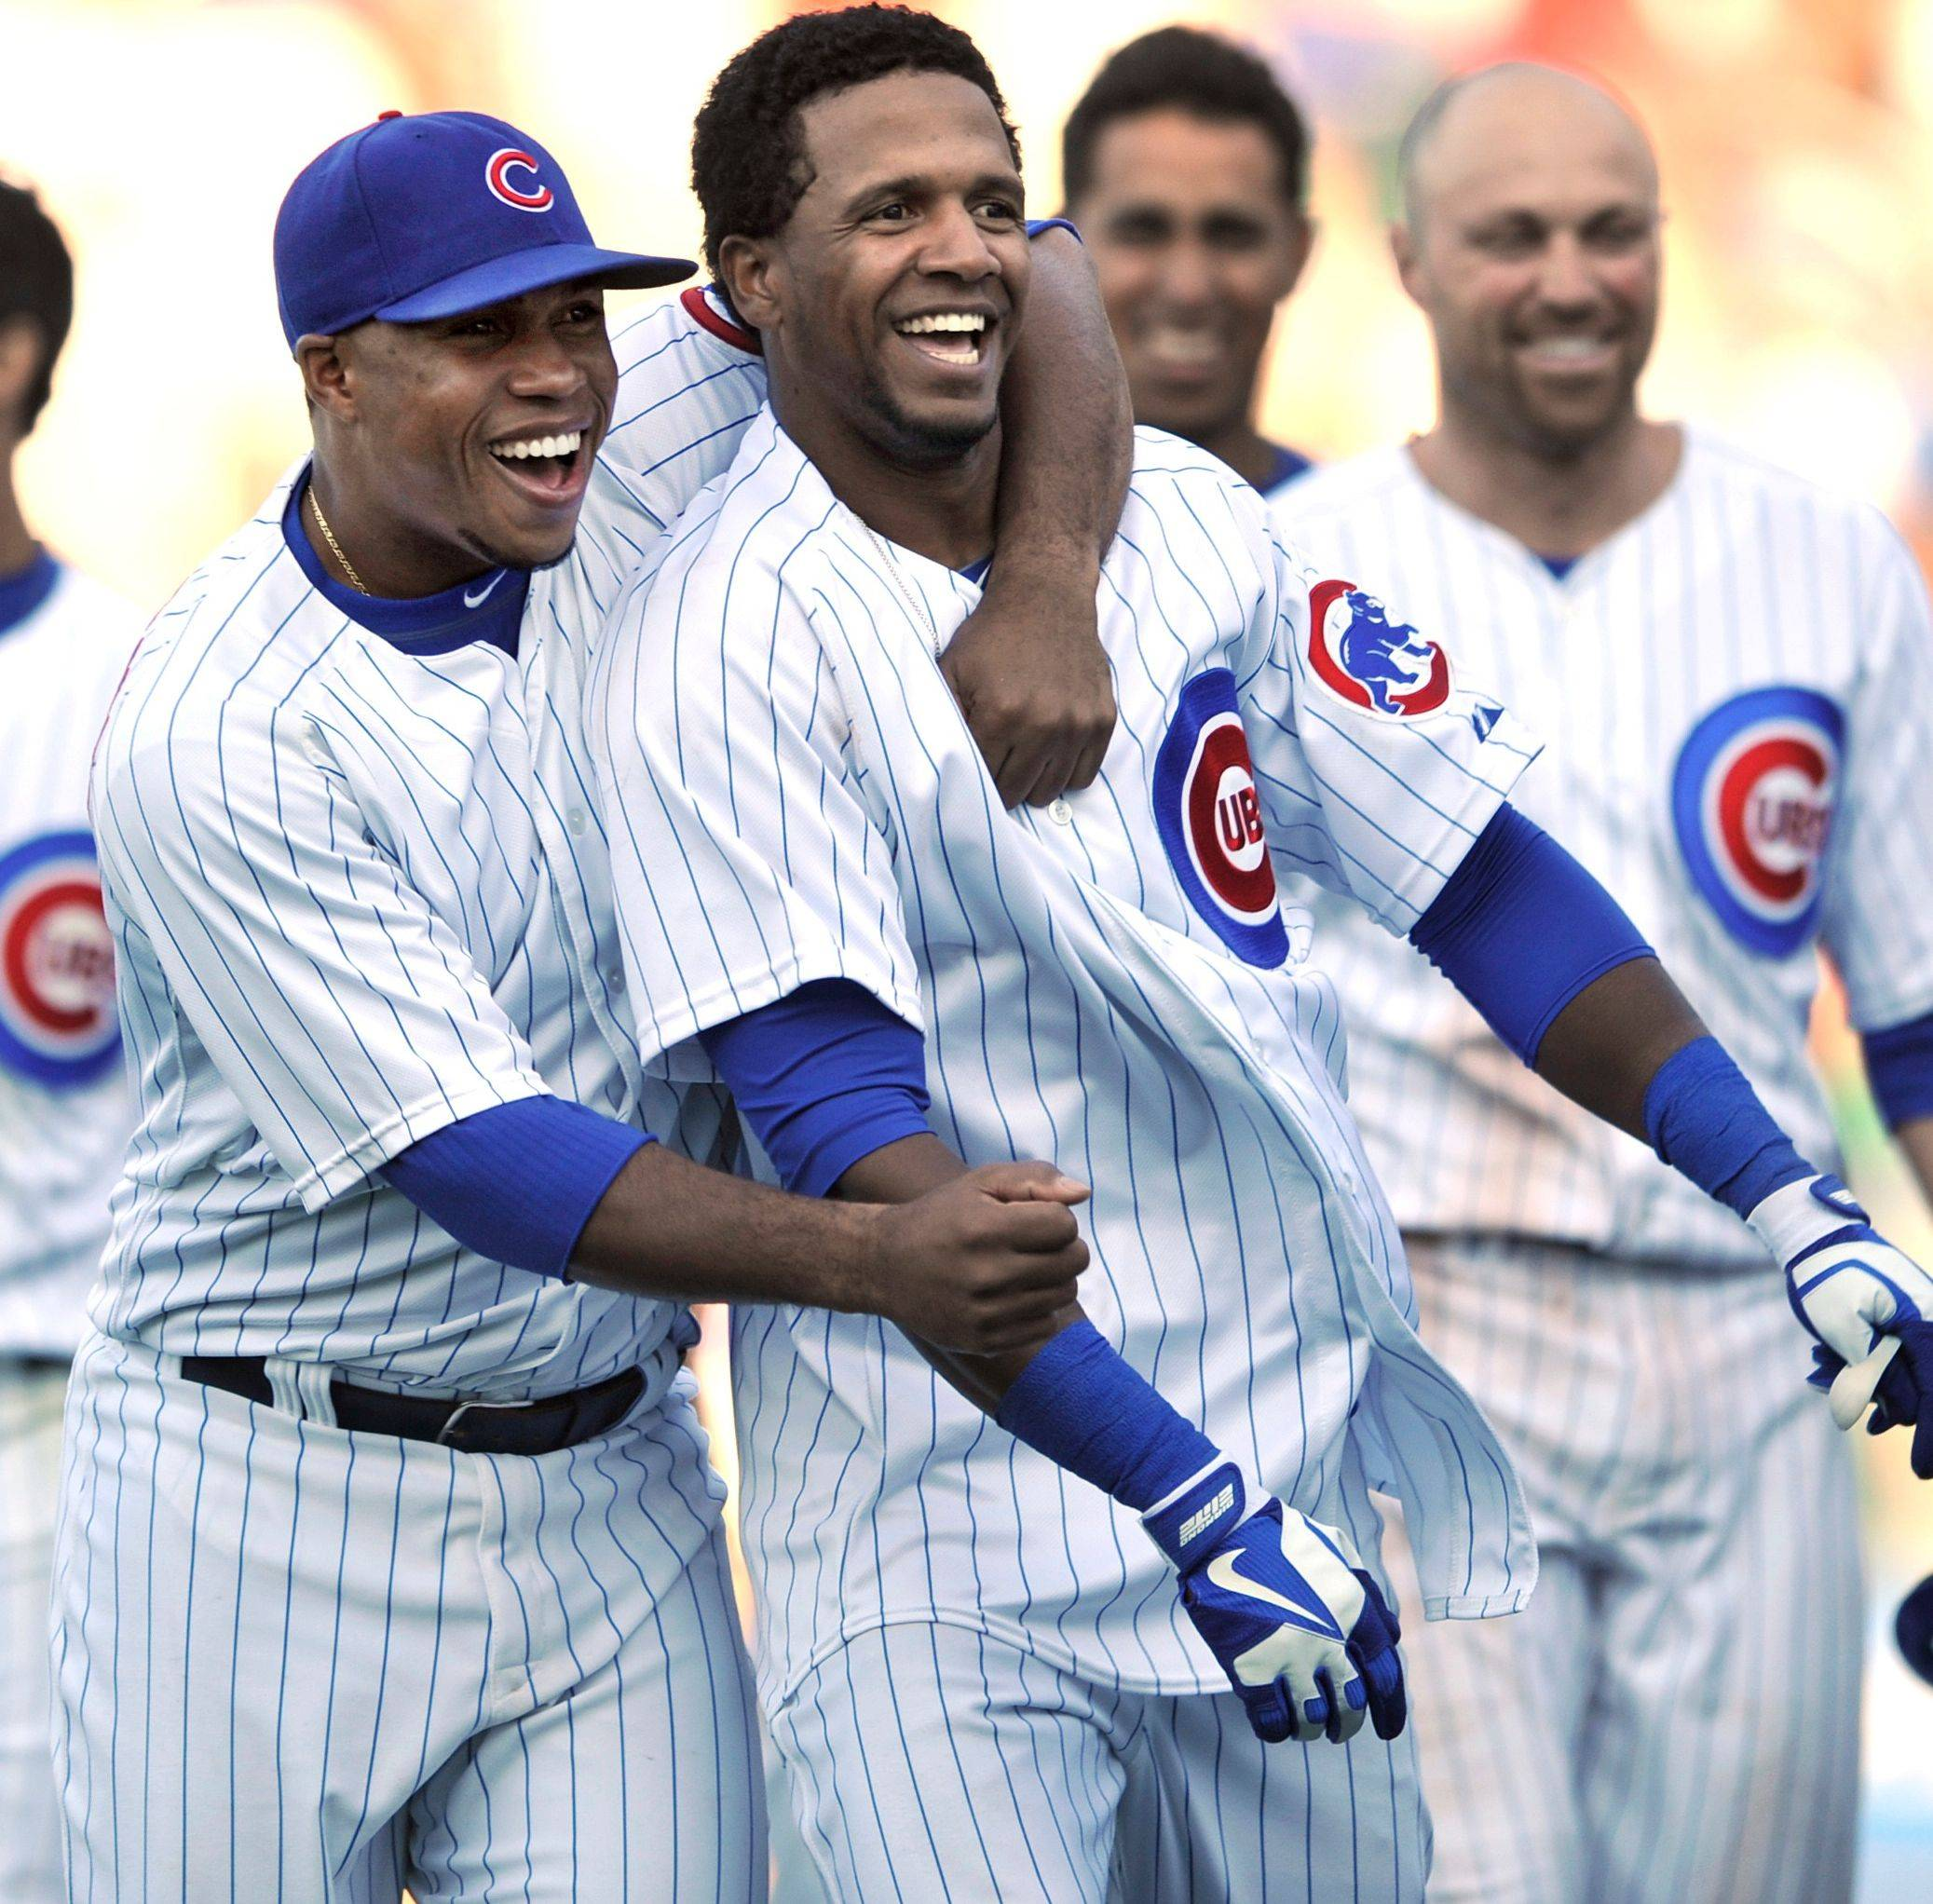 Julio Borbon, front right, celebrates with teammate Luis Valbuena, left, after hitting a walkoff-single to defeat the Reds on Thursday at Wrigley Field.